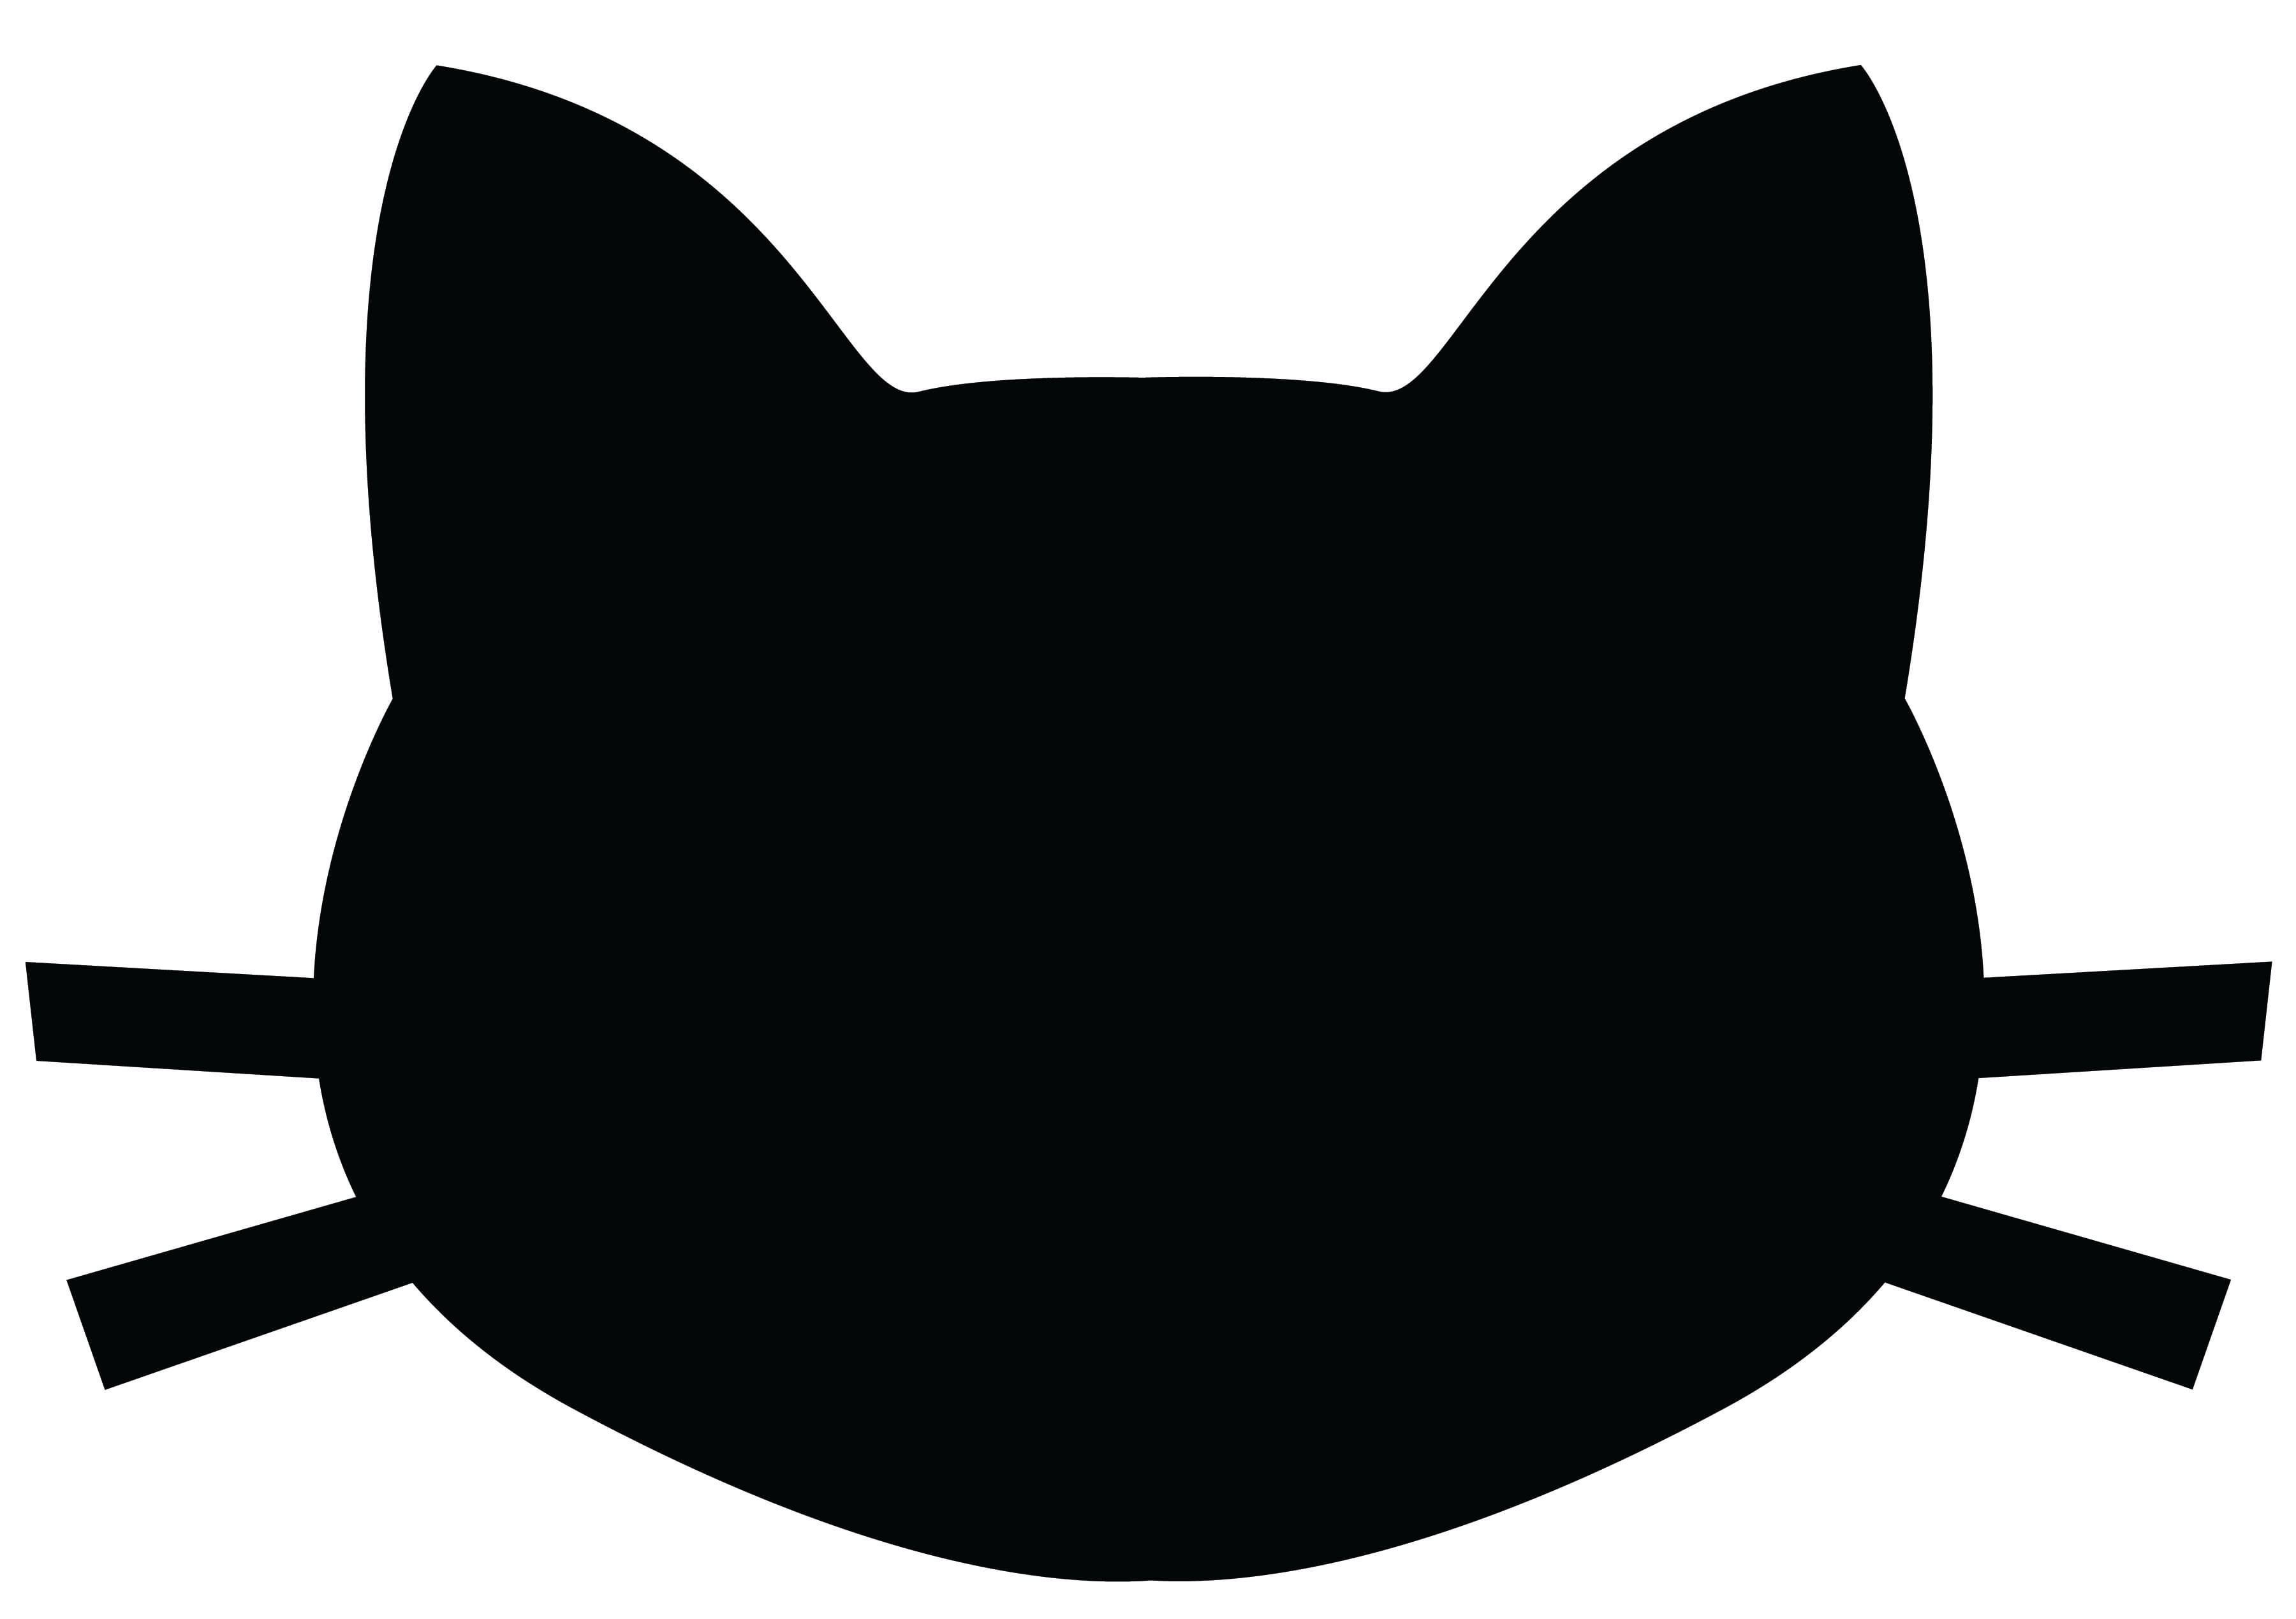 face silhouette outline at getdrawings com free for personal use rh getdrawings com cat face clipart outline cat face clipart black and white